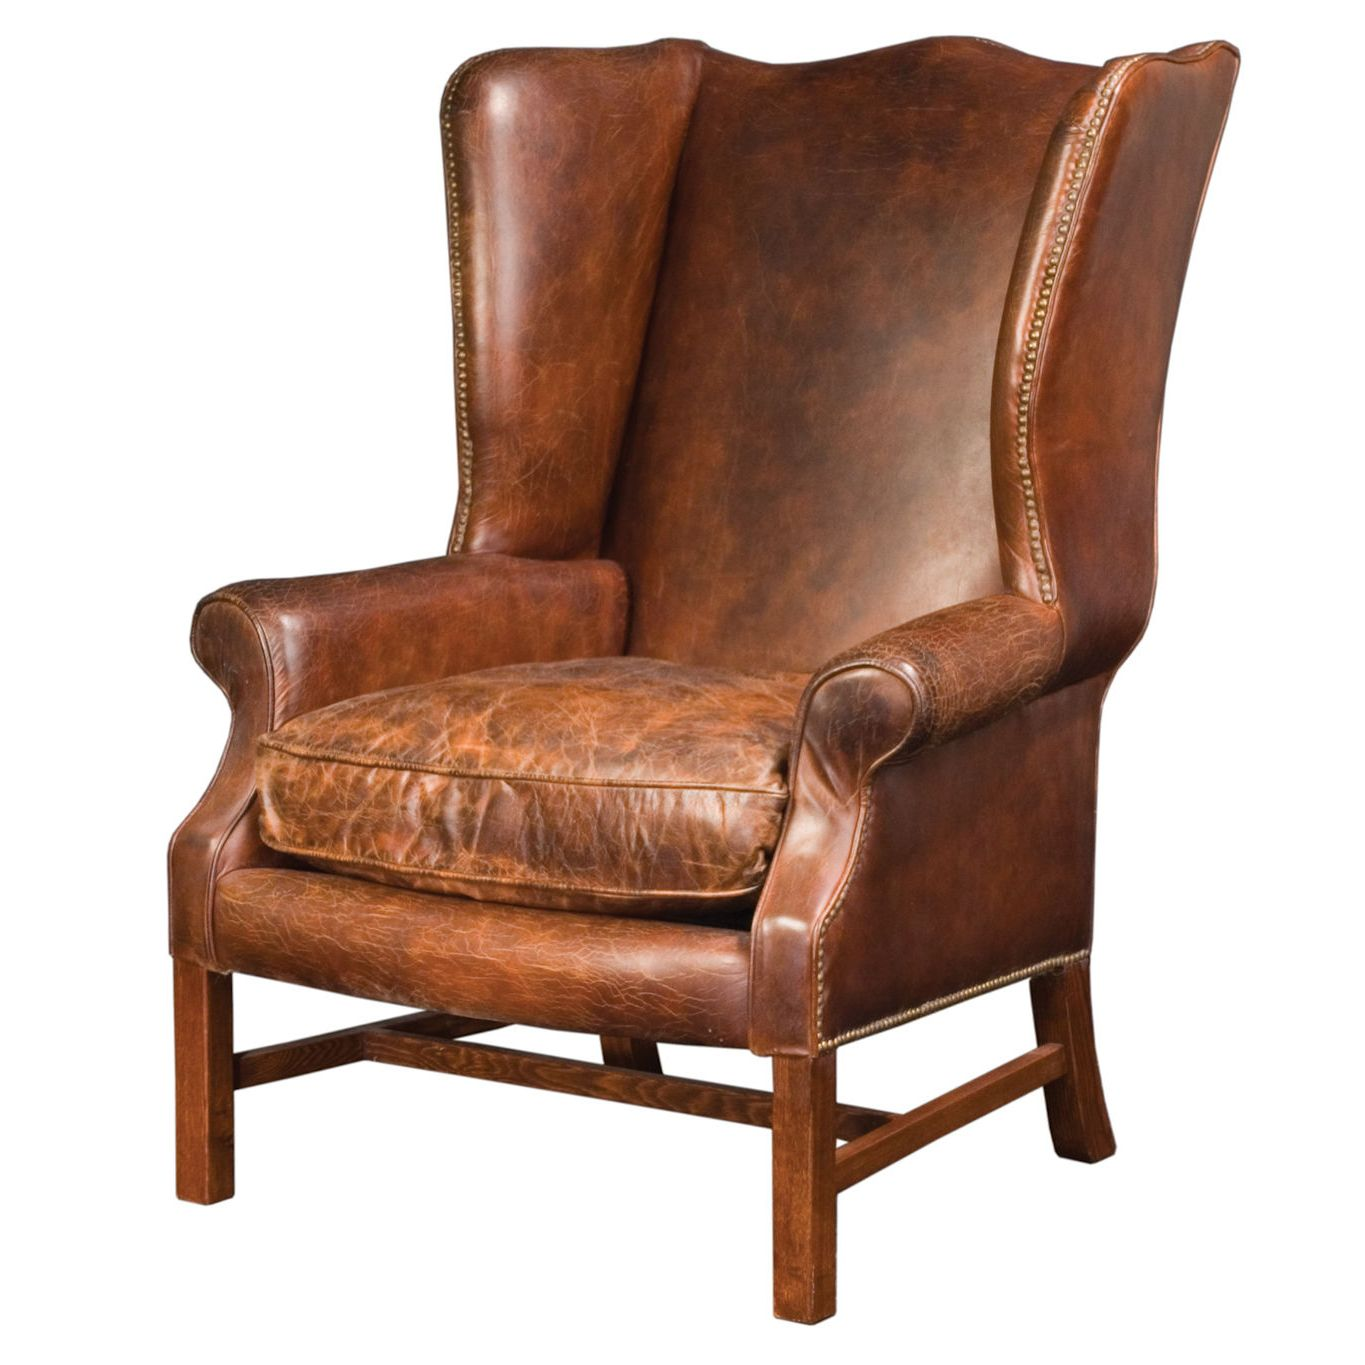 Charmant Image Of: Leather Wingback Chair Pretty